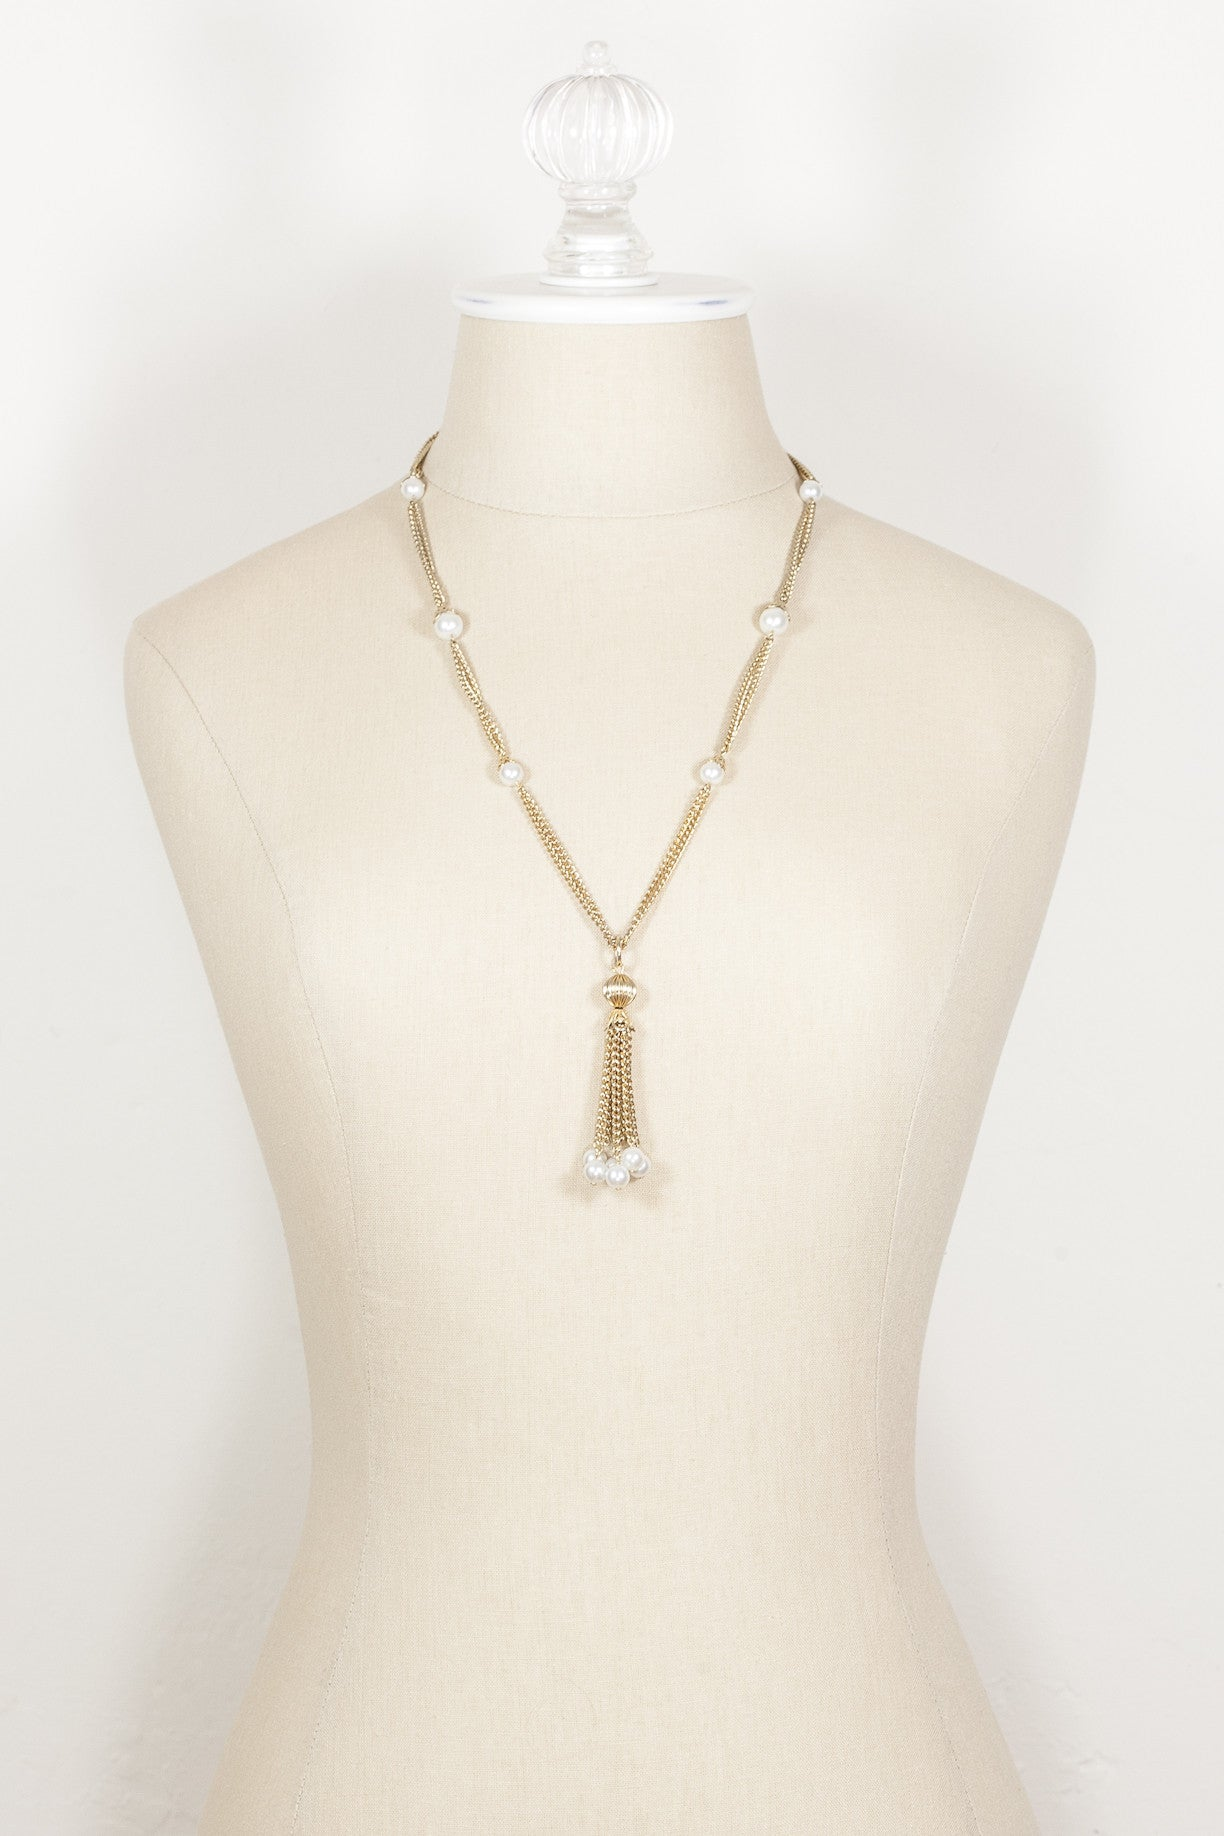 70's__Vintage__Classic Multi Chain Pearl Tassel Necklace